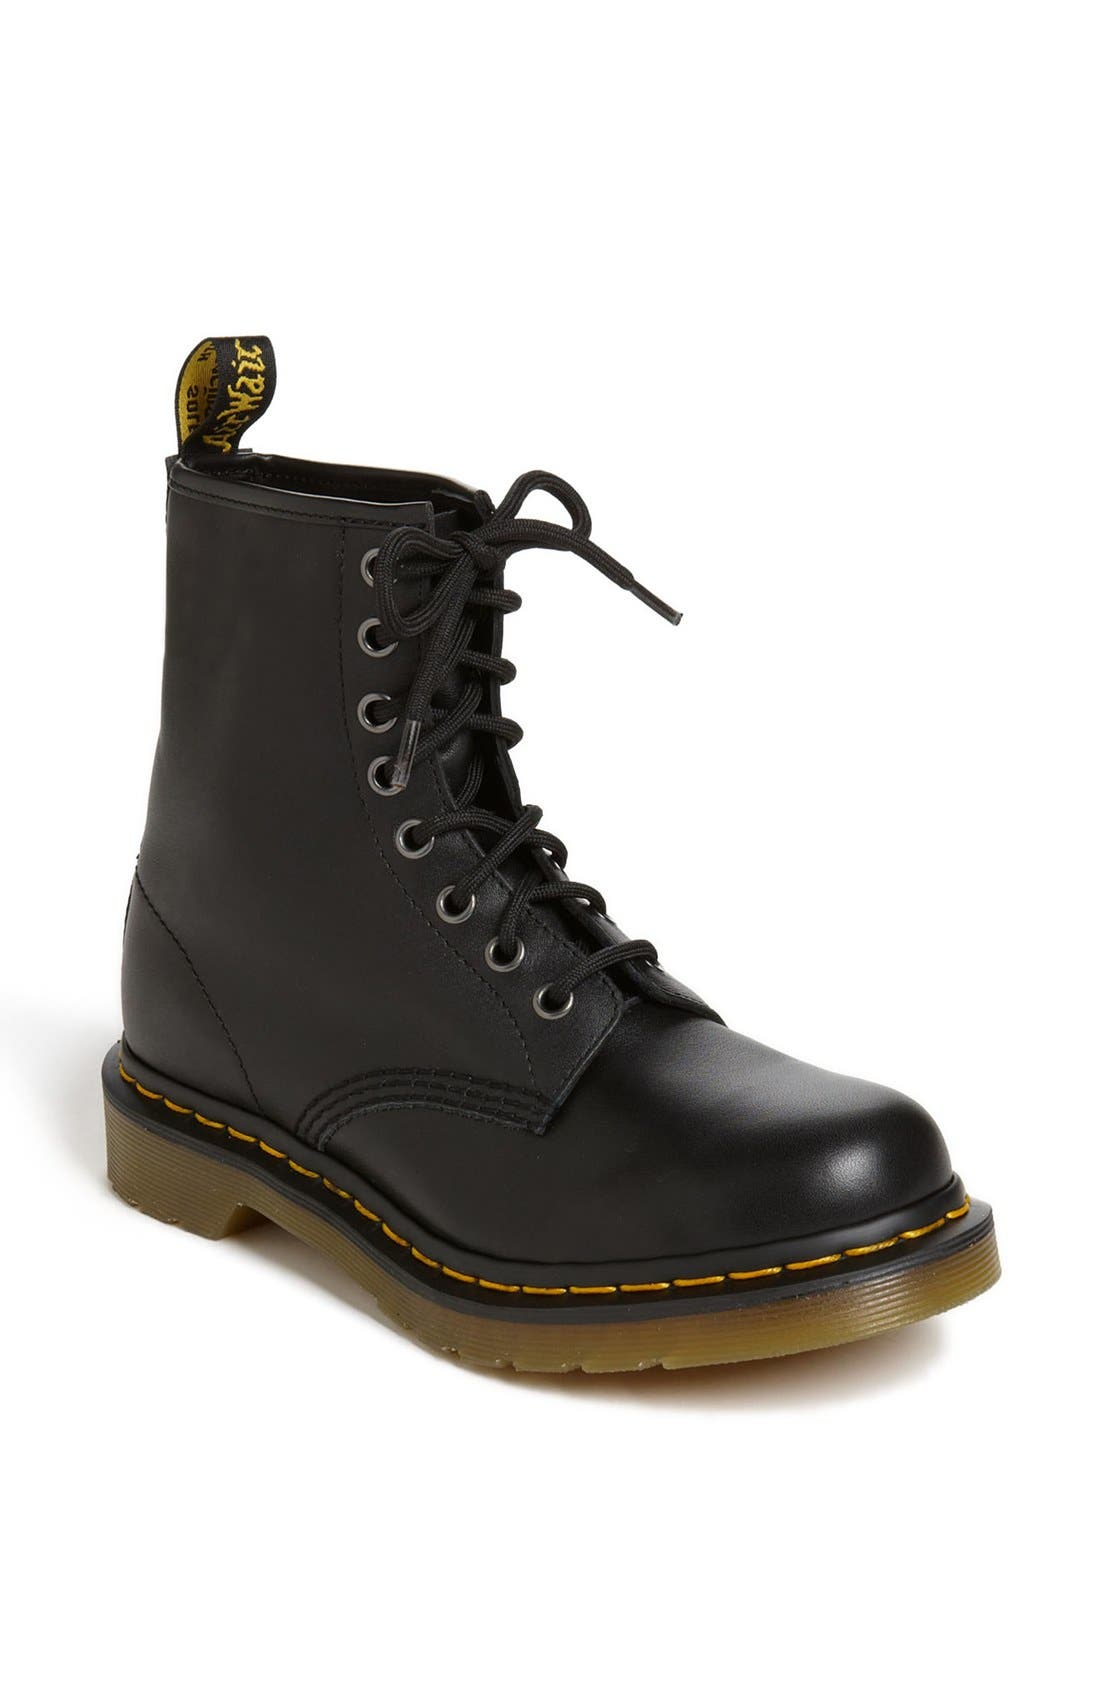 1460 W Boot,                         Main,                         color, 002